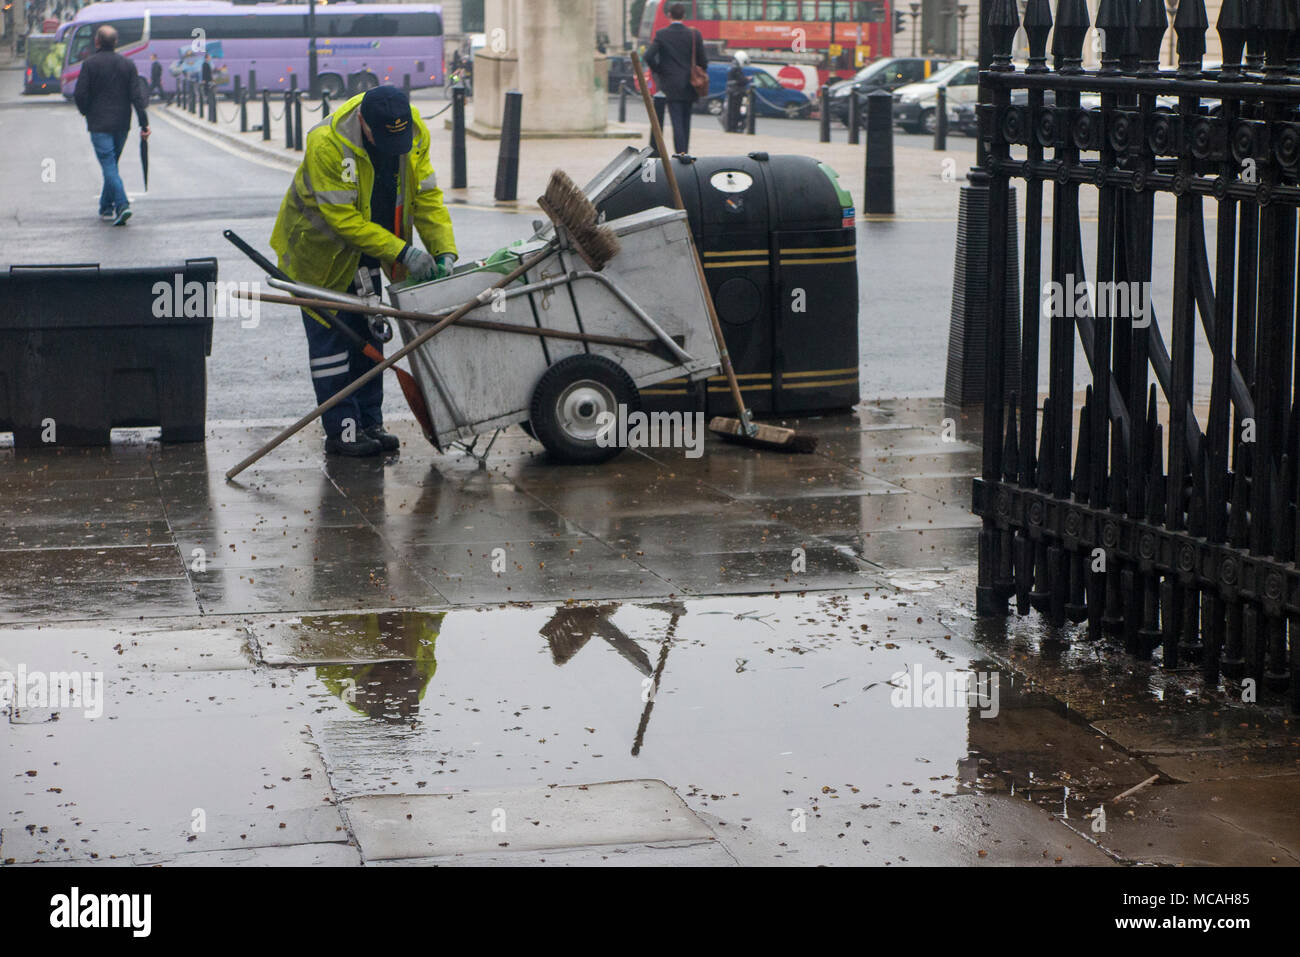 A street sweeper emptying a bin is reflected in a puddle on a rainy London street Stock Photo